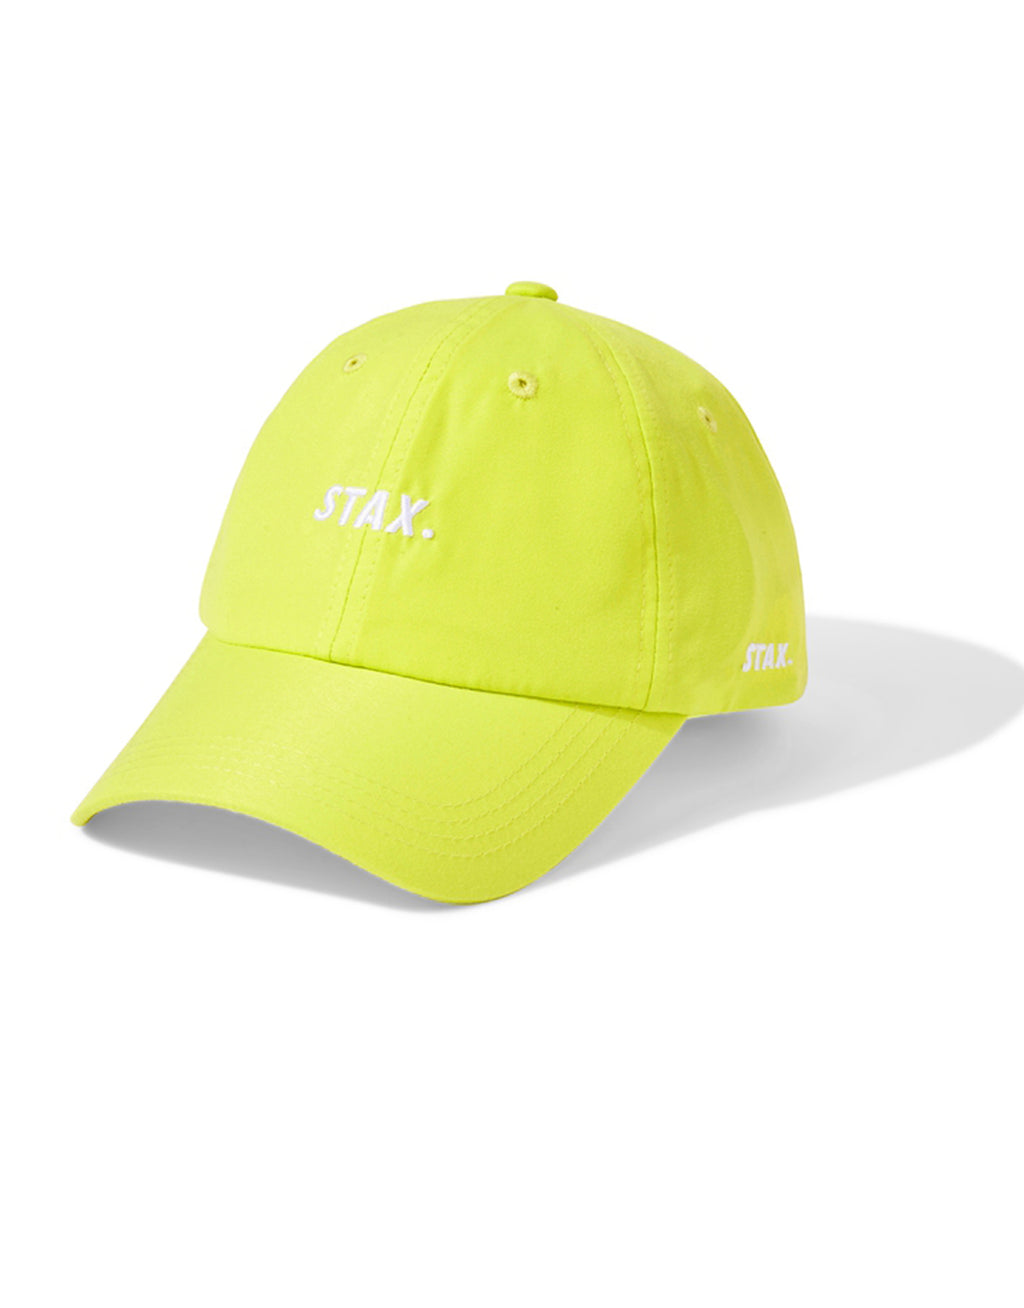 STAX.-Official  DAD HAT - LEMON